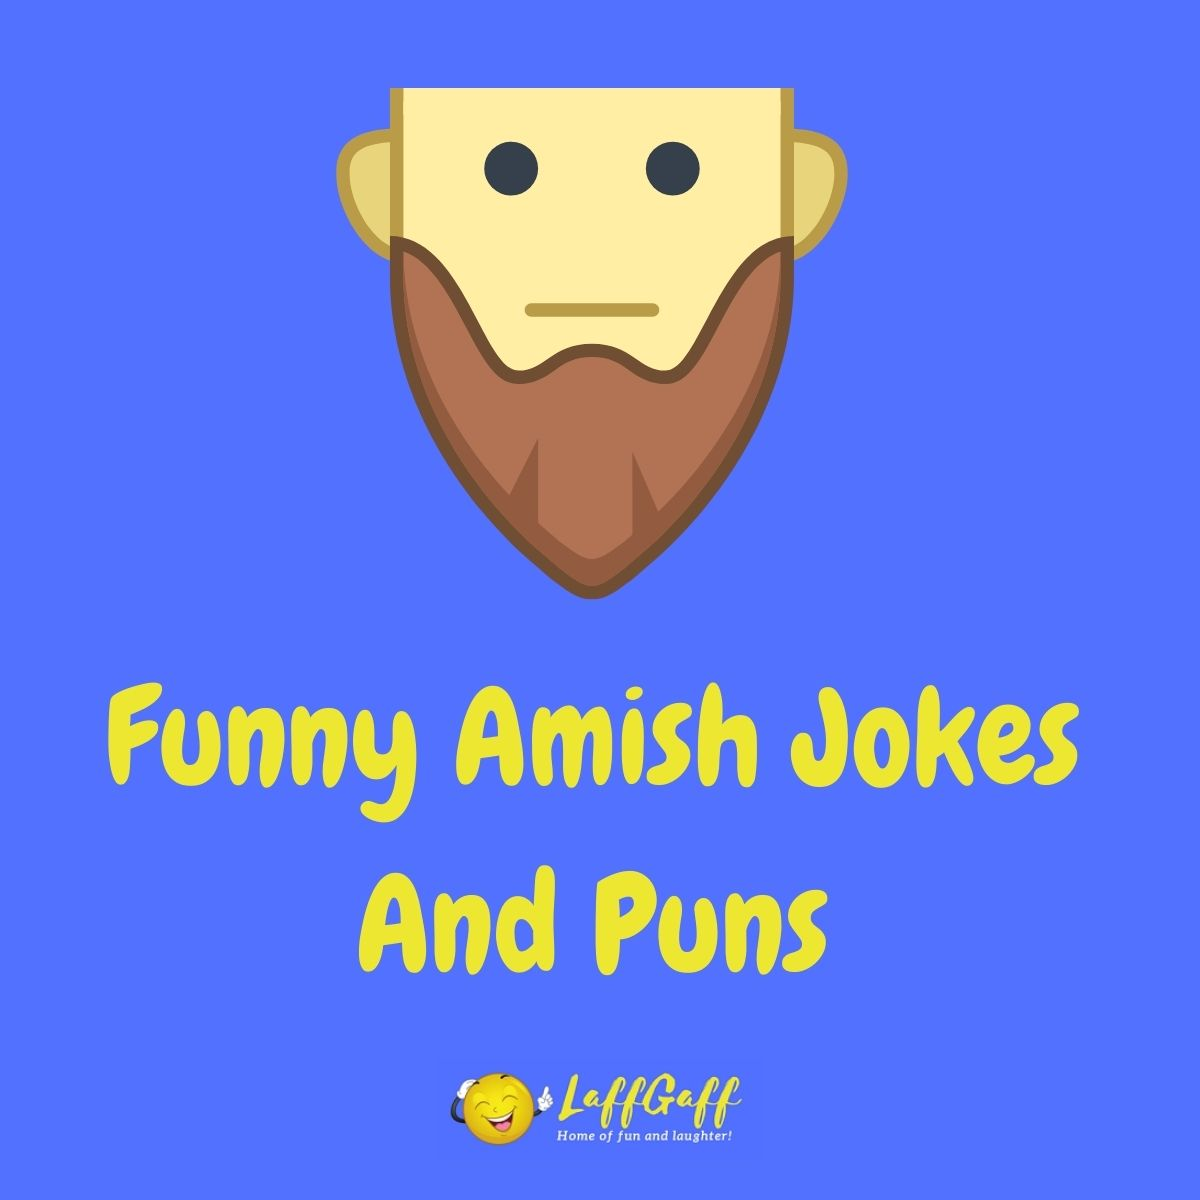 Featured image for a page of funny Amish jokes and puns.